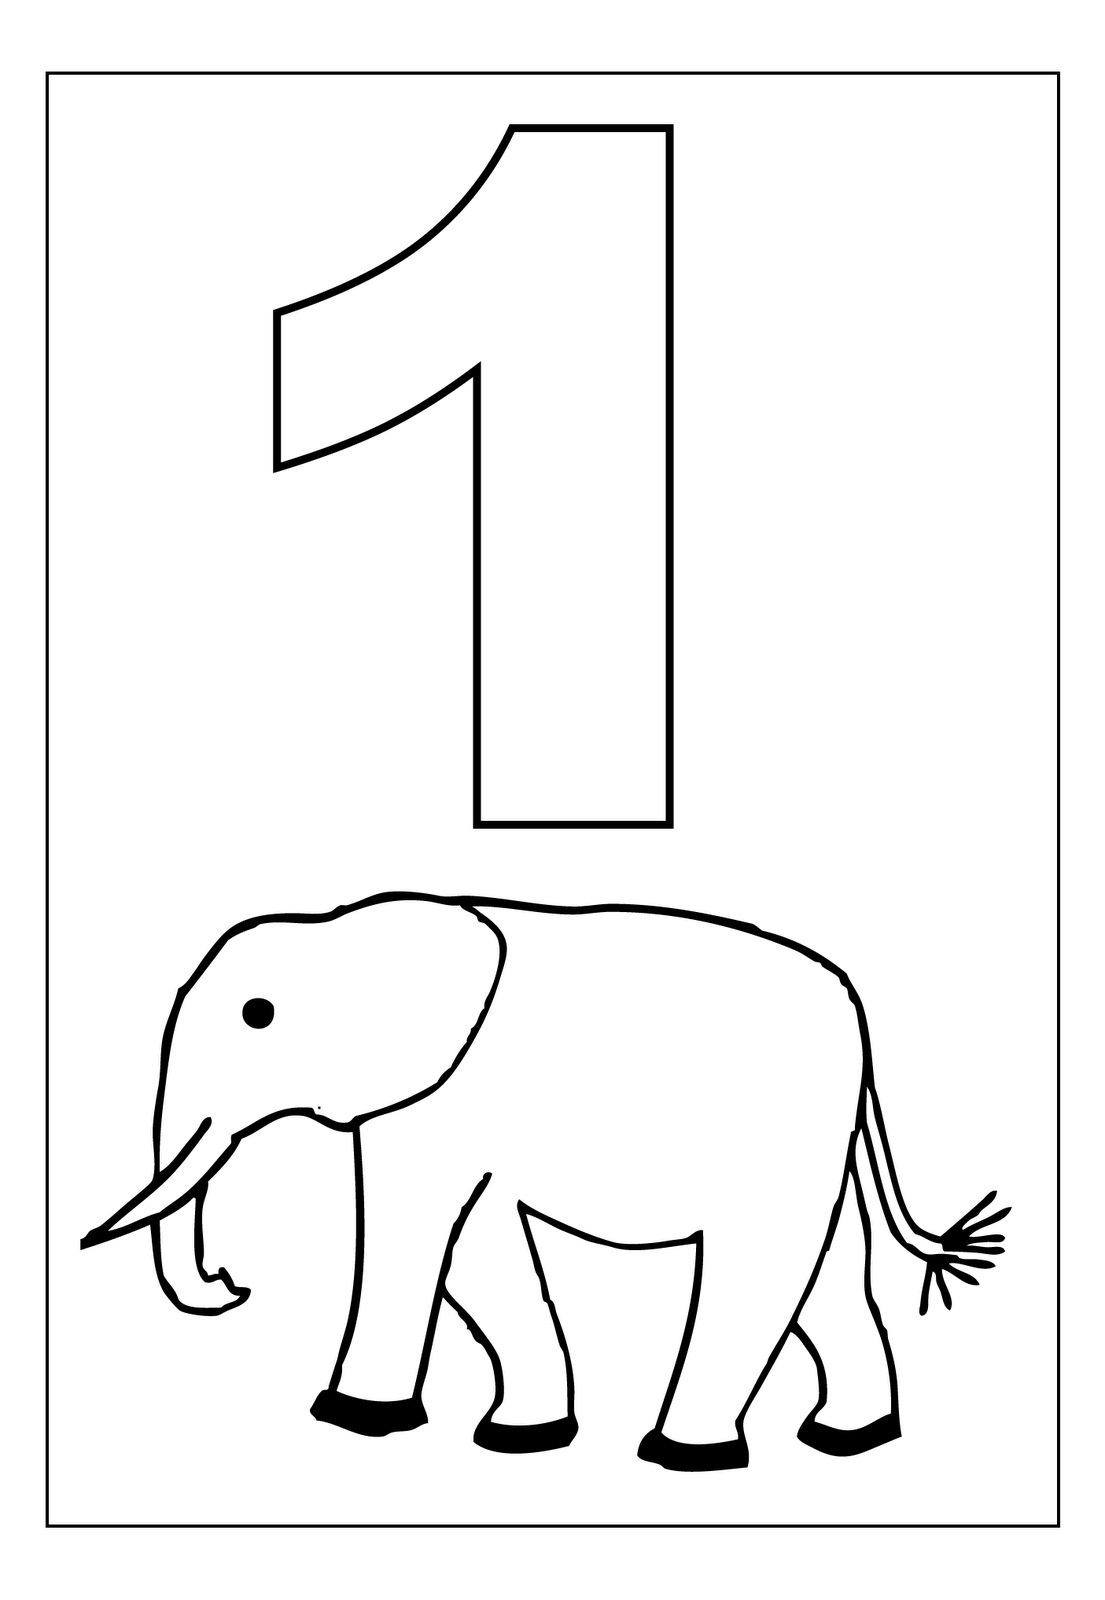 coloring pages 1 5 quot1 johnquot bible book coloring page ministry to children pages coloring 1 5